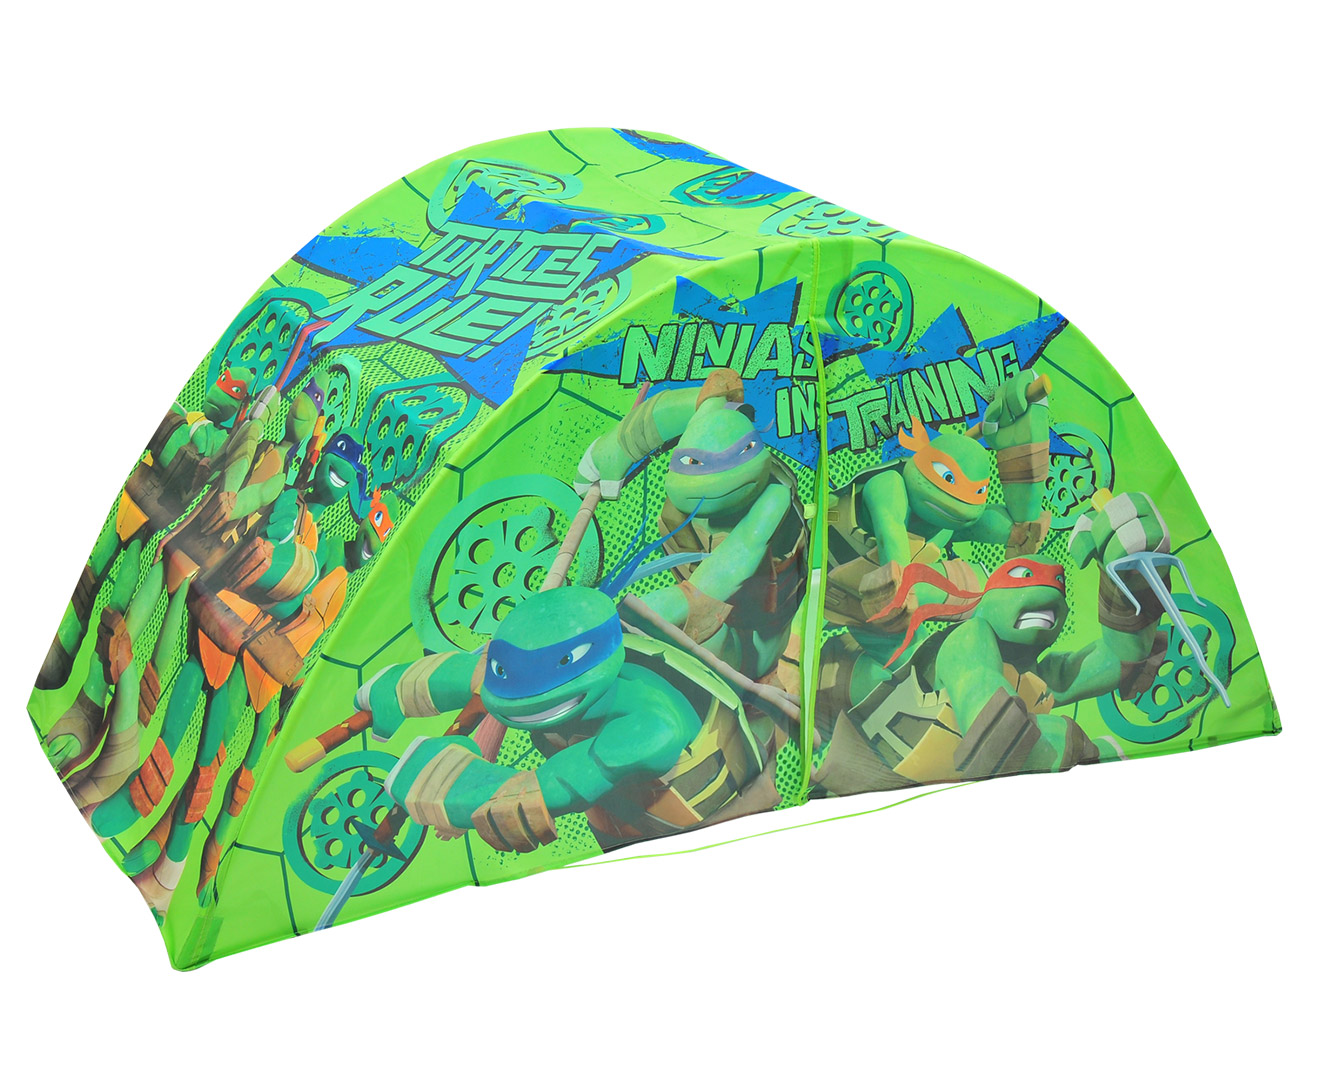 Teenage Mutant Ninja Turtles Bed Tent - Green | Great daily deals at Australiau0027s favourite superstore | Catch.com.au  sc 1 st  Catch : ninja turtle tent - memphite.com